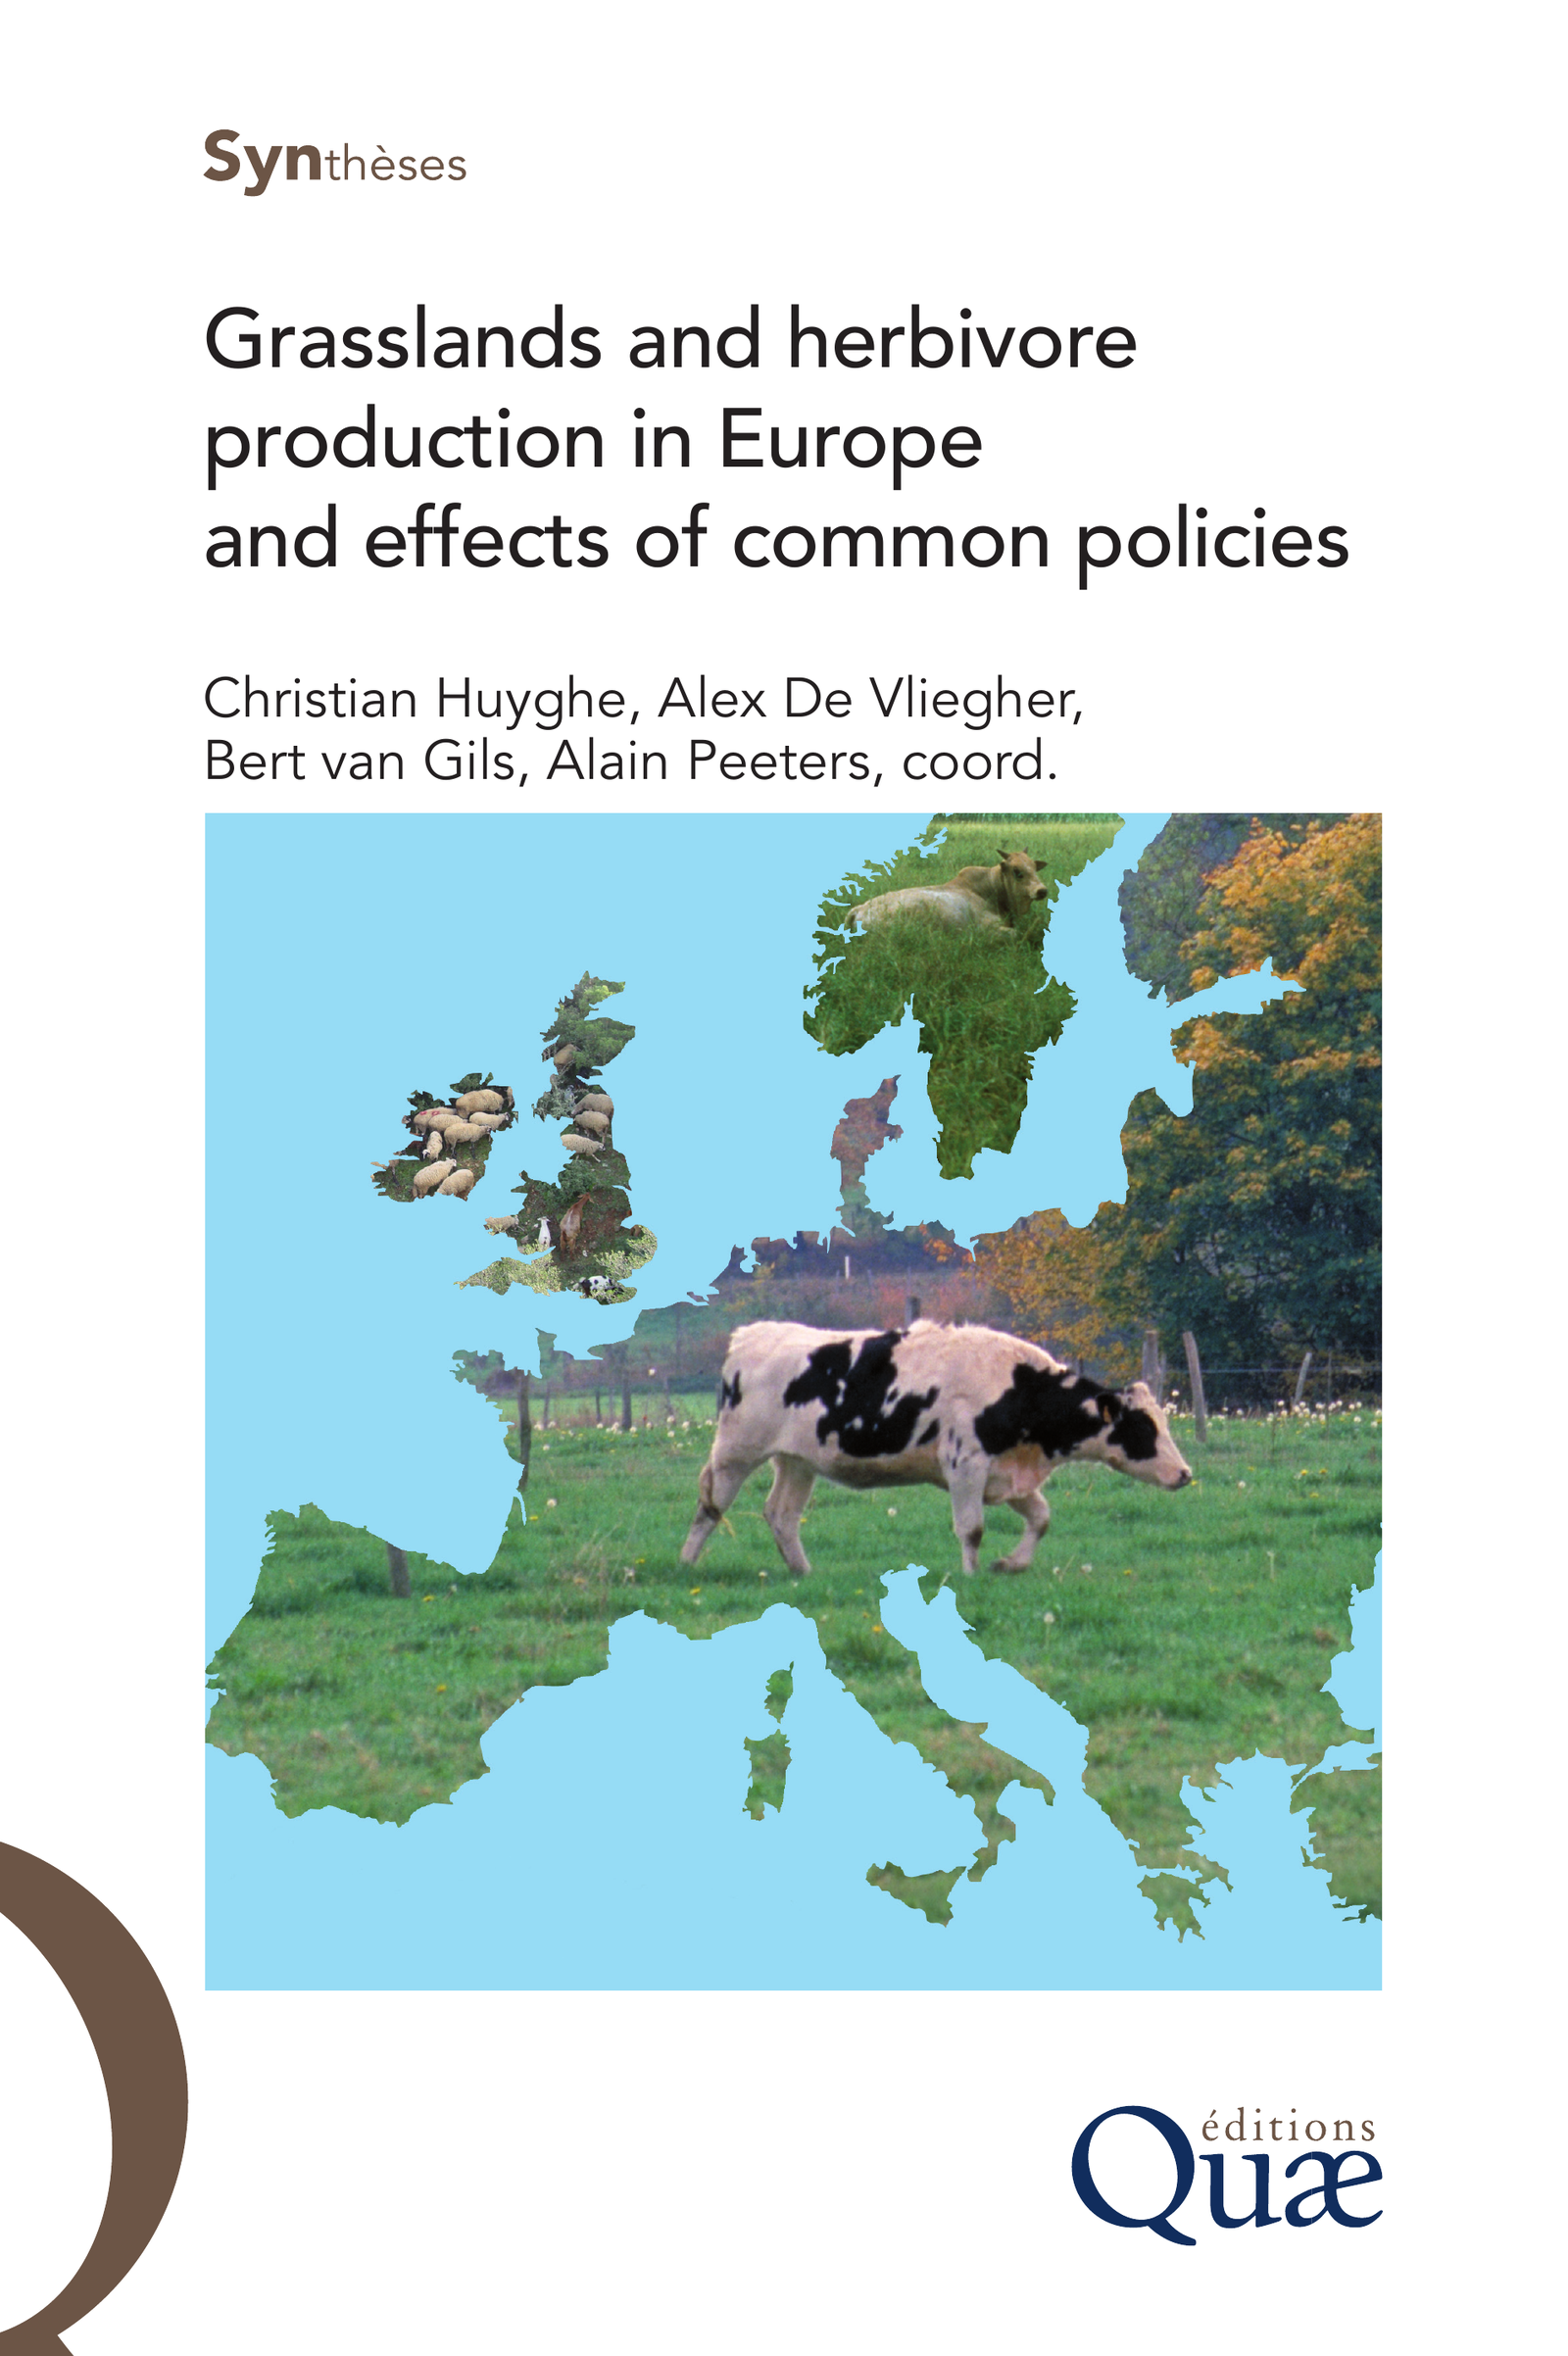 Grasslands and herbivore production in Europe and effects of common policies